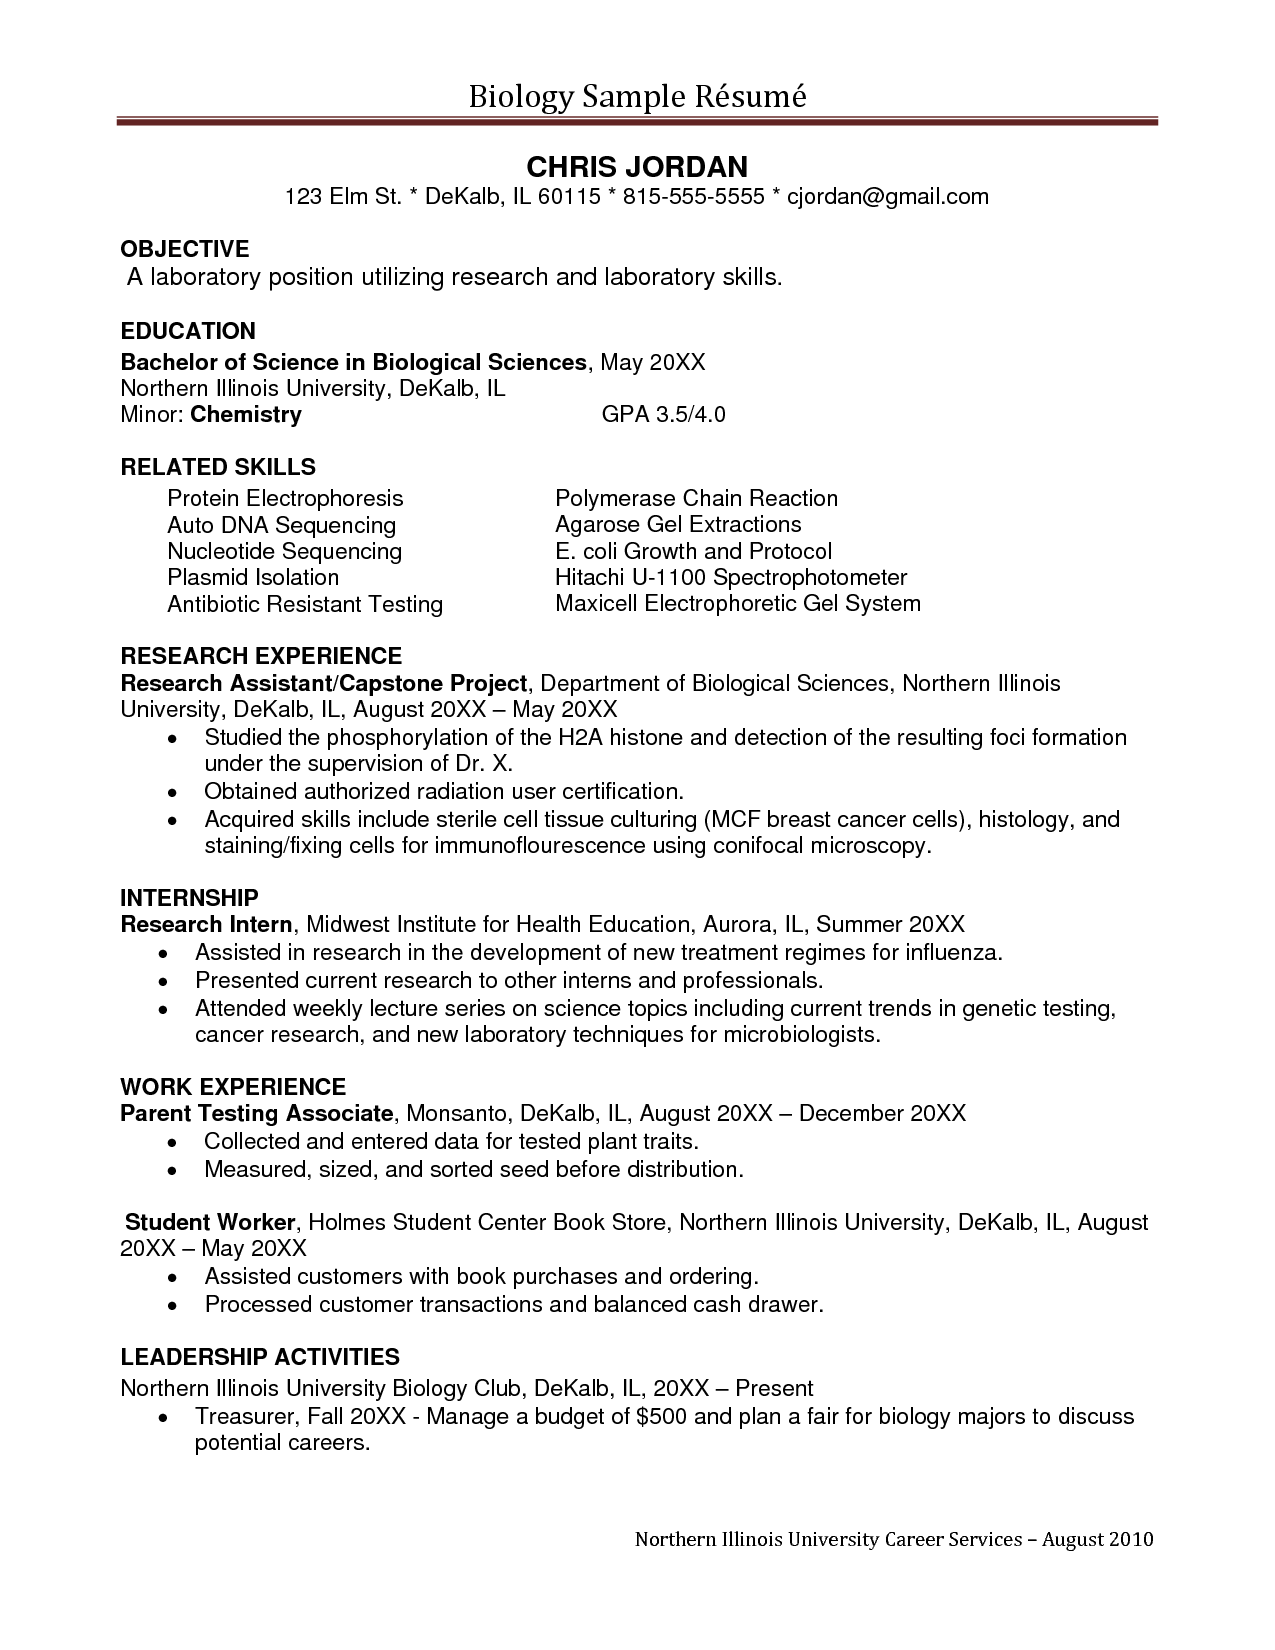 Sample undergraduate research assistant resume sample sample undergraduate research assistant resume sample administrative assistant resume objective examples medical assistant resume objective examples yelopaper Gallery